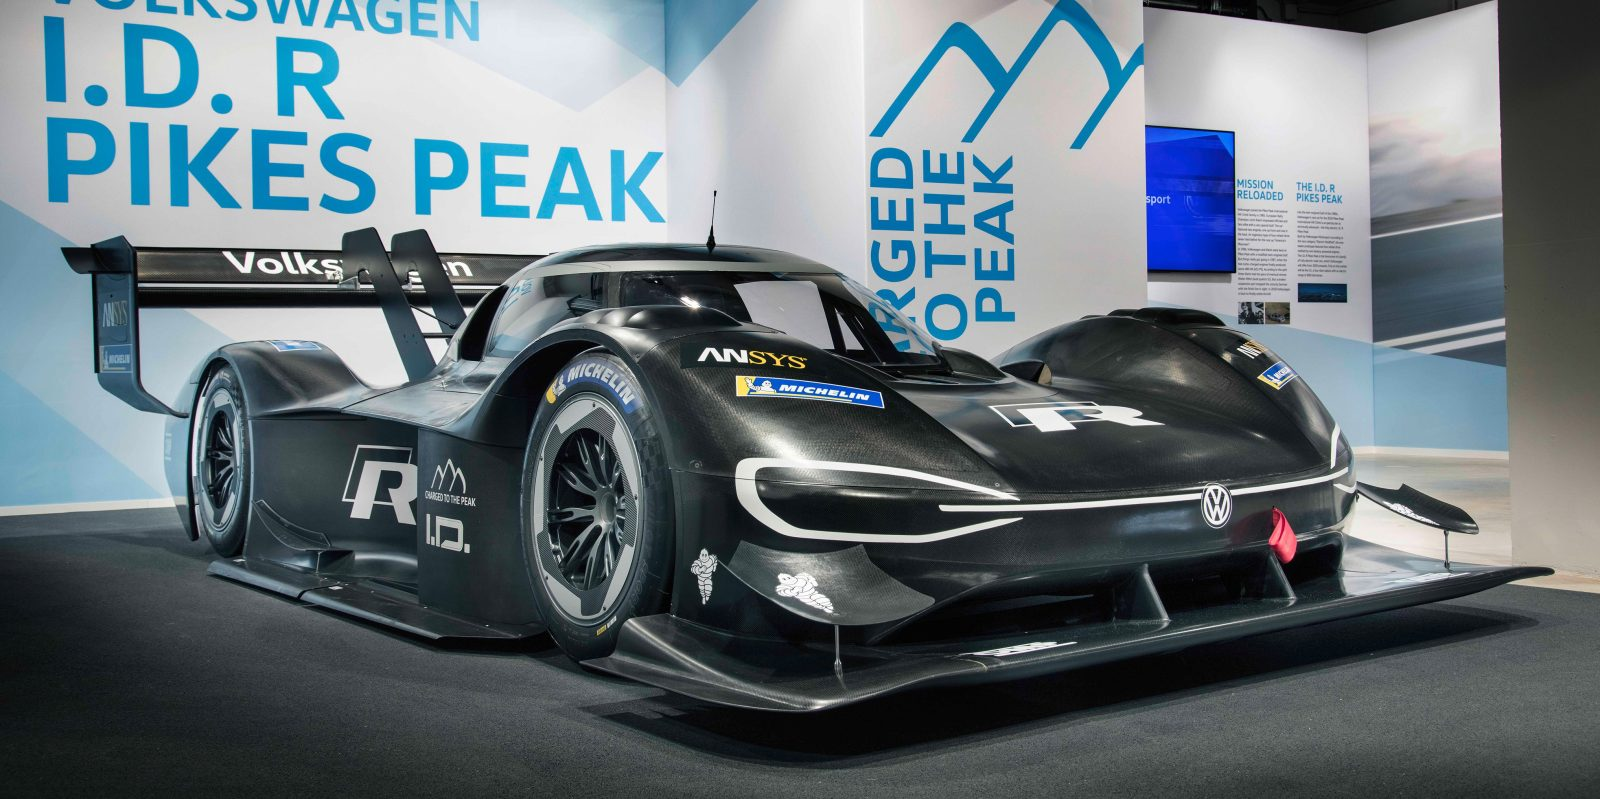 Vw Unveils New All Electric Racing Car To Climb Pikes Peak This Summer